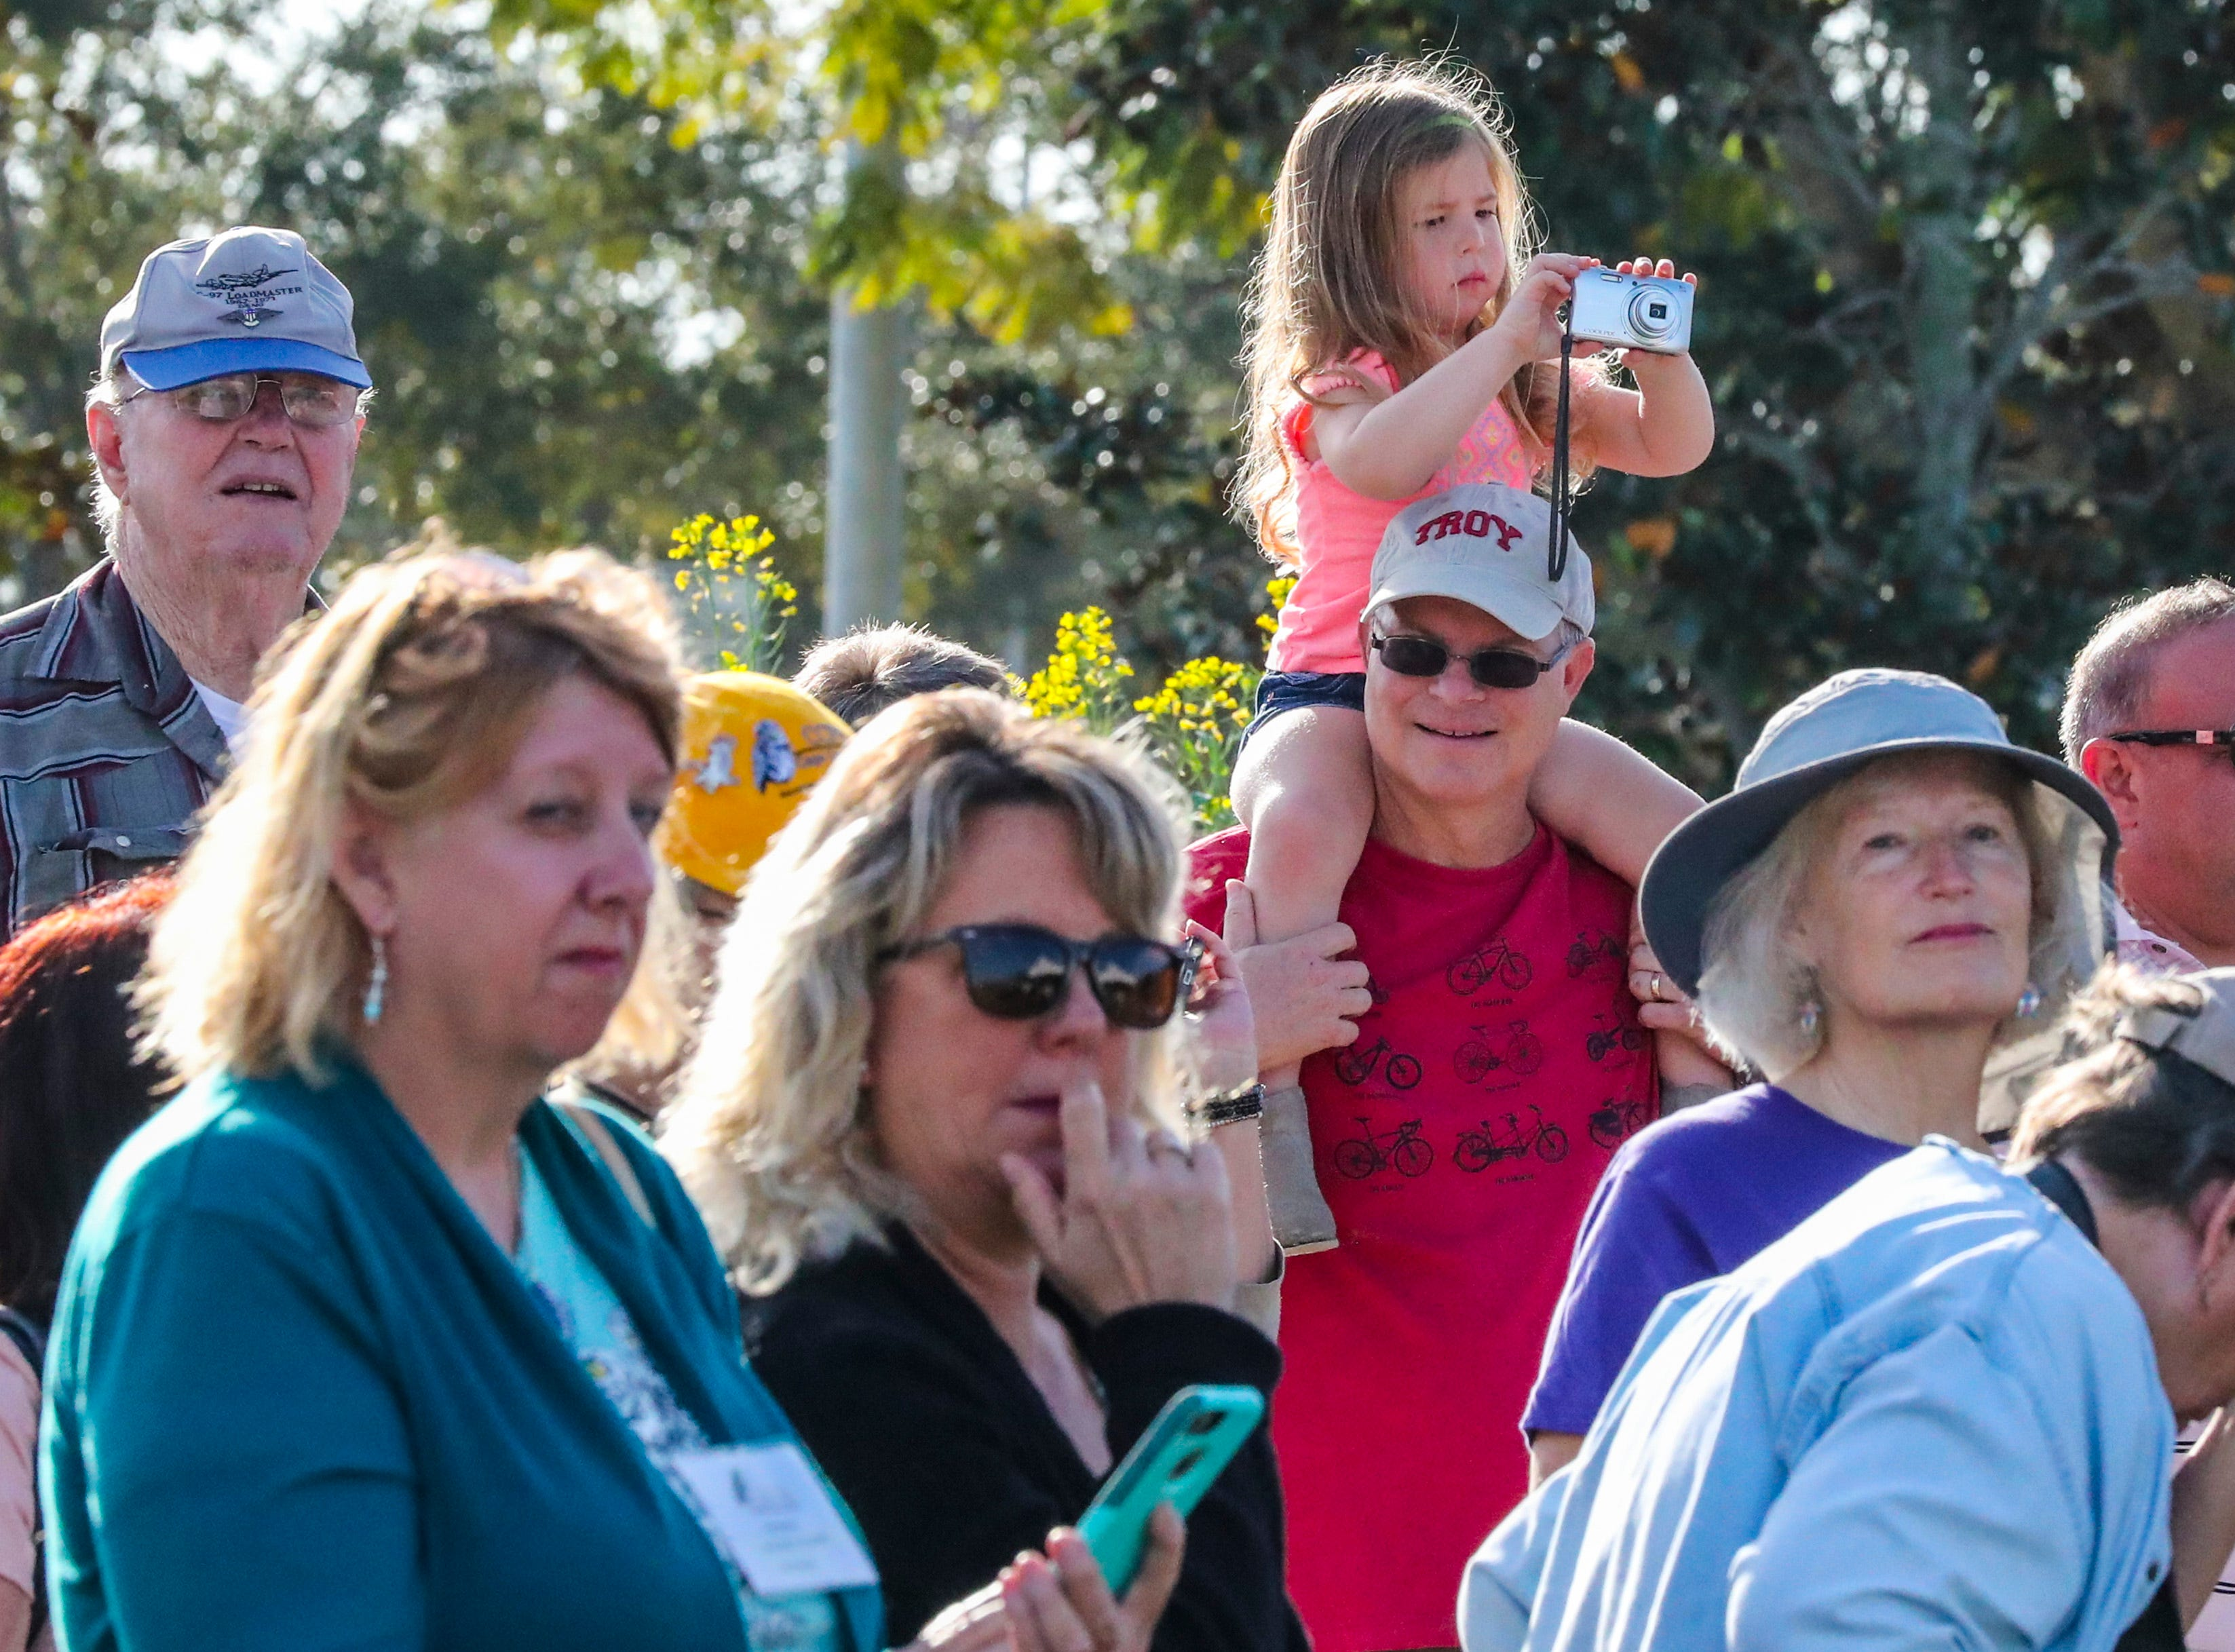 """Cape Coral's inaugural """"Ground-Owl Day"""" ceremony was Saturday, February 2, 2019. The event was hosted by CCFW and Cape Coral Parks and Recreation at the Rotary Community Garden. The owl naming contest winners were announced as well as the Mayor read a  proclamation. Everyone hoped that the new mascot saw his shadow so six more weeks of """"winter weather"""" in Cape Coral could be enjoyed. The winning names for the pair of burrowing owls that live next to the City Hall are Owliver and Owlivia."""